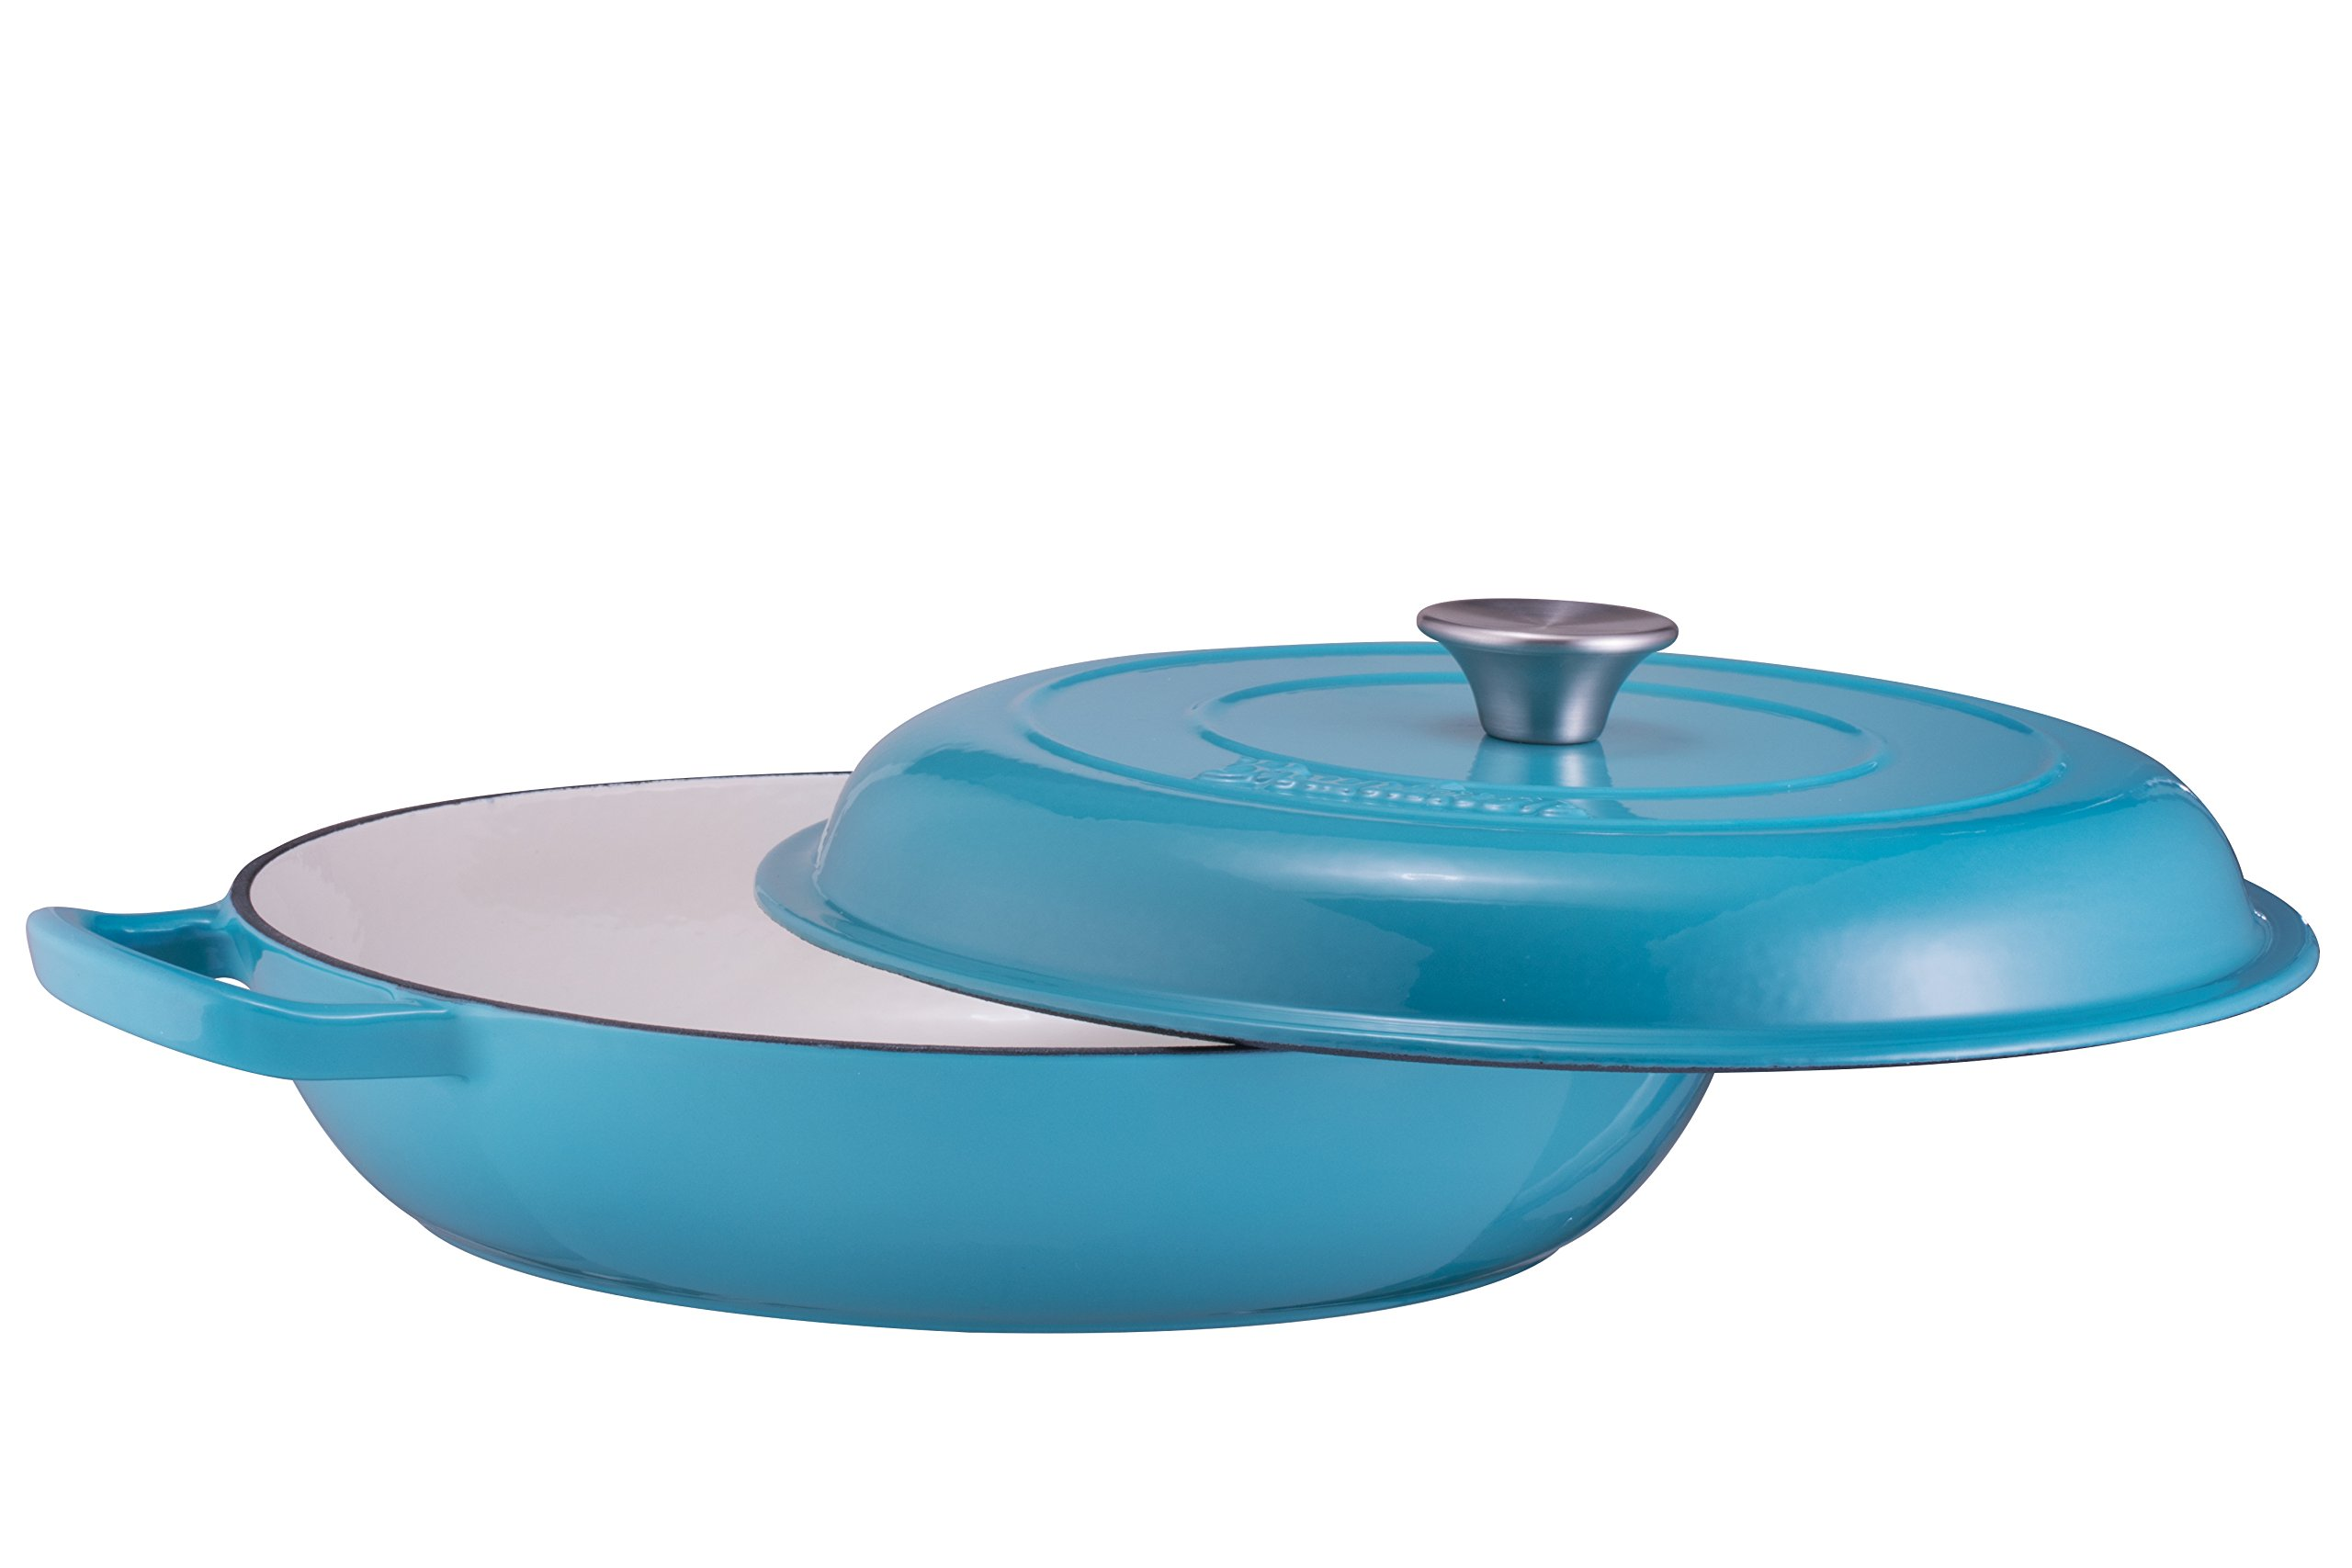 Enameled Cast Iron Shallow Casserole Braiser Pan with Cover, 3.8-Quart, Marine Blue by Bruntmor (Image #2)